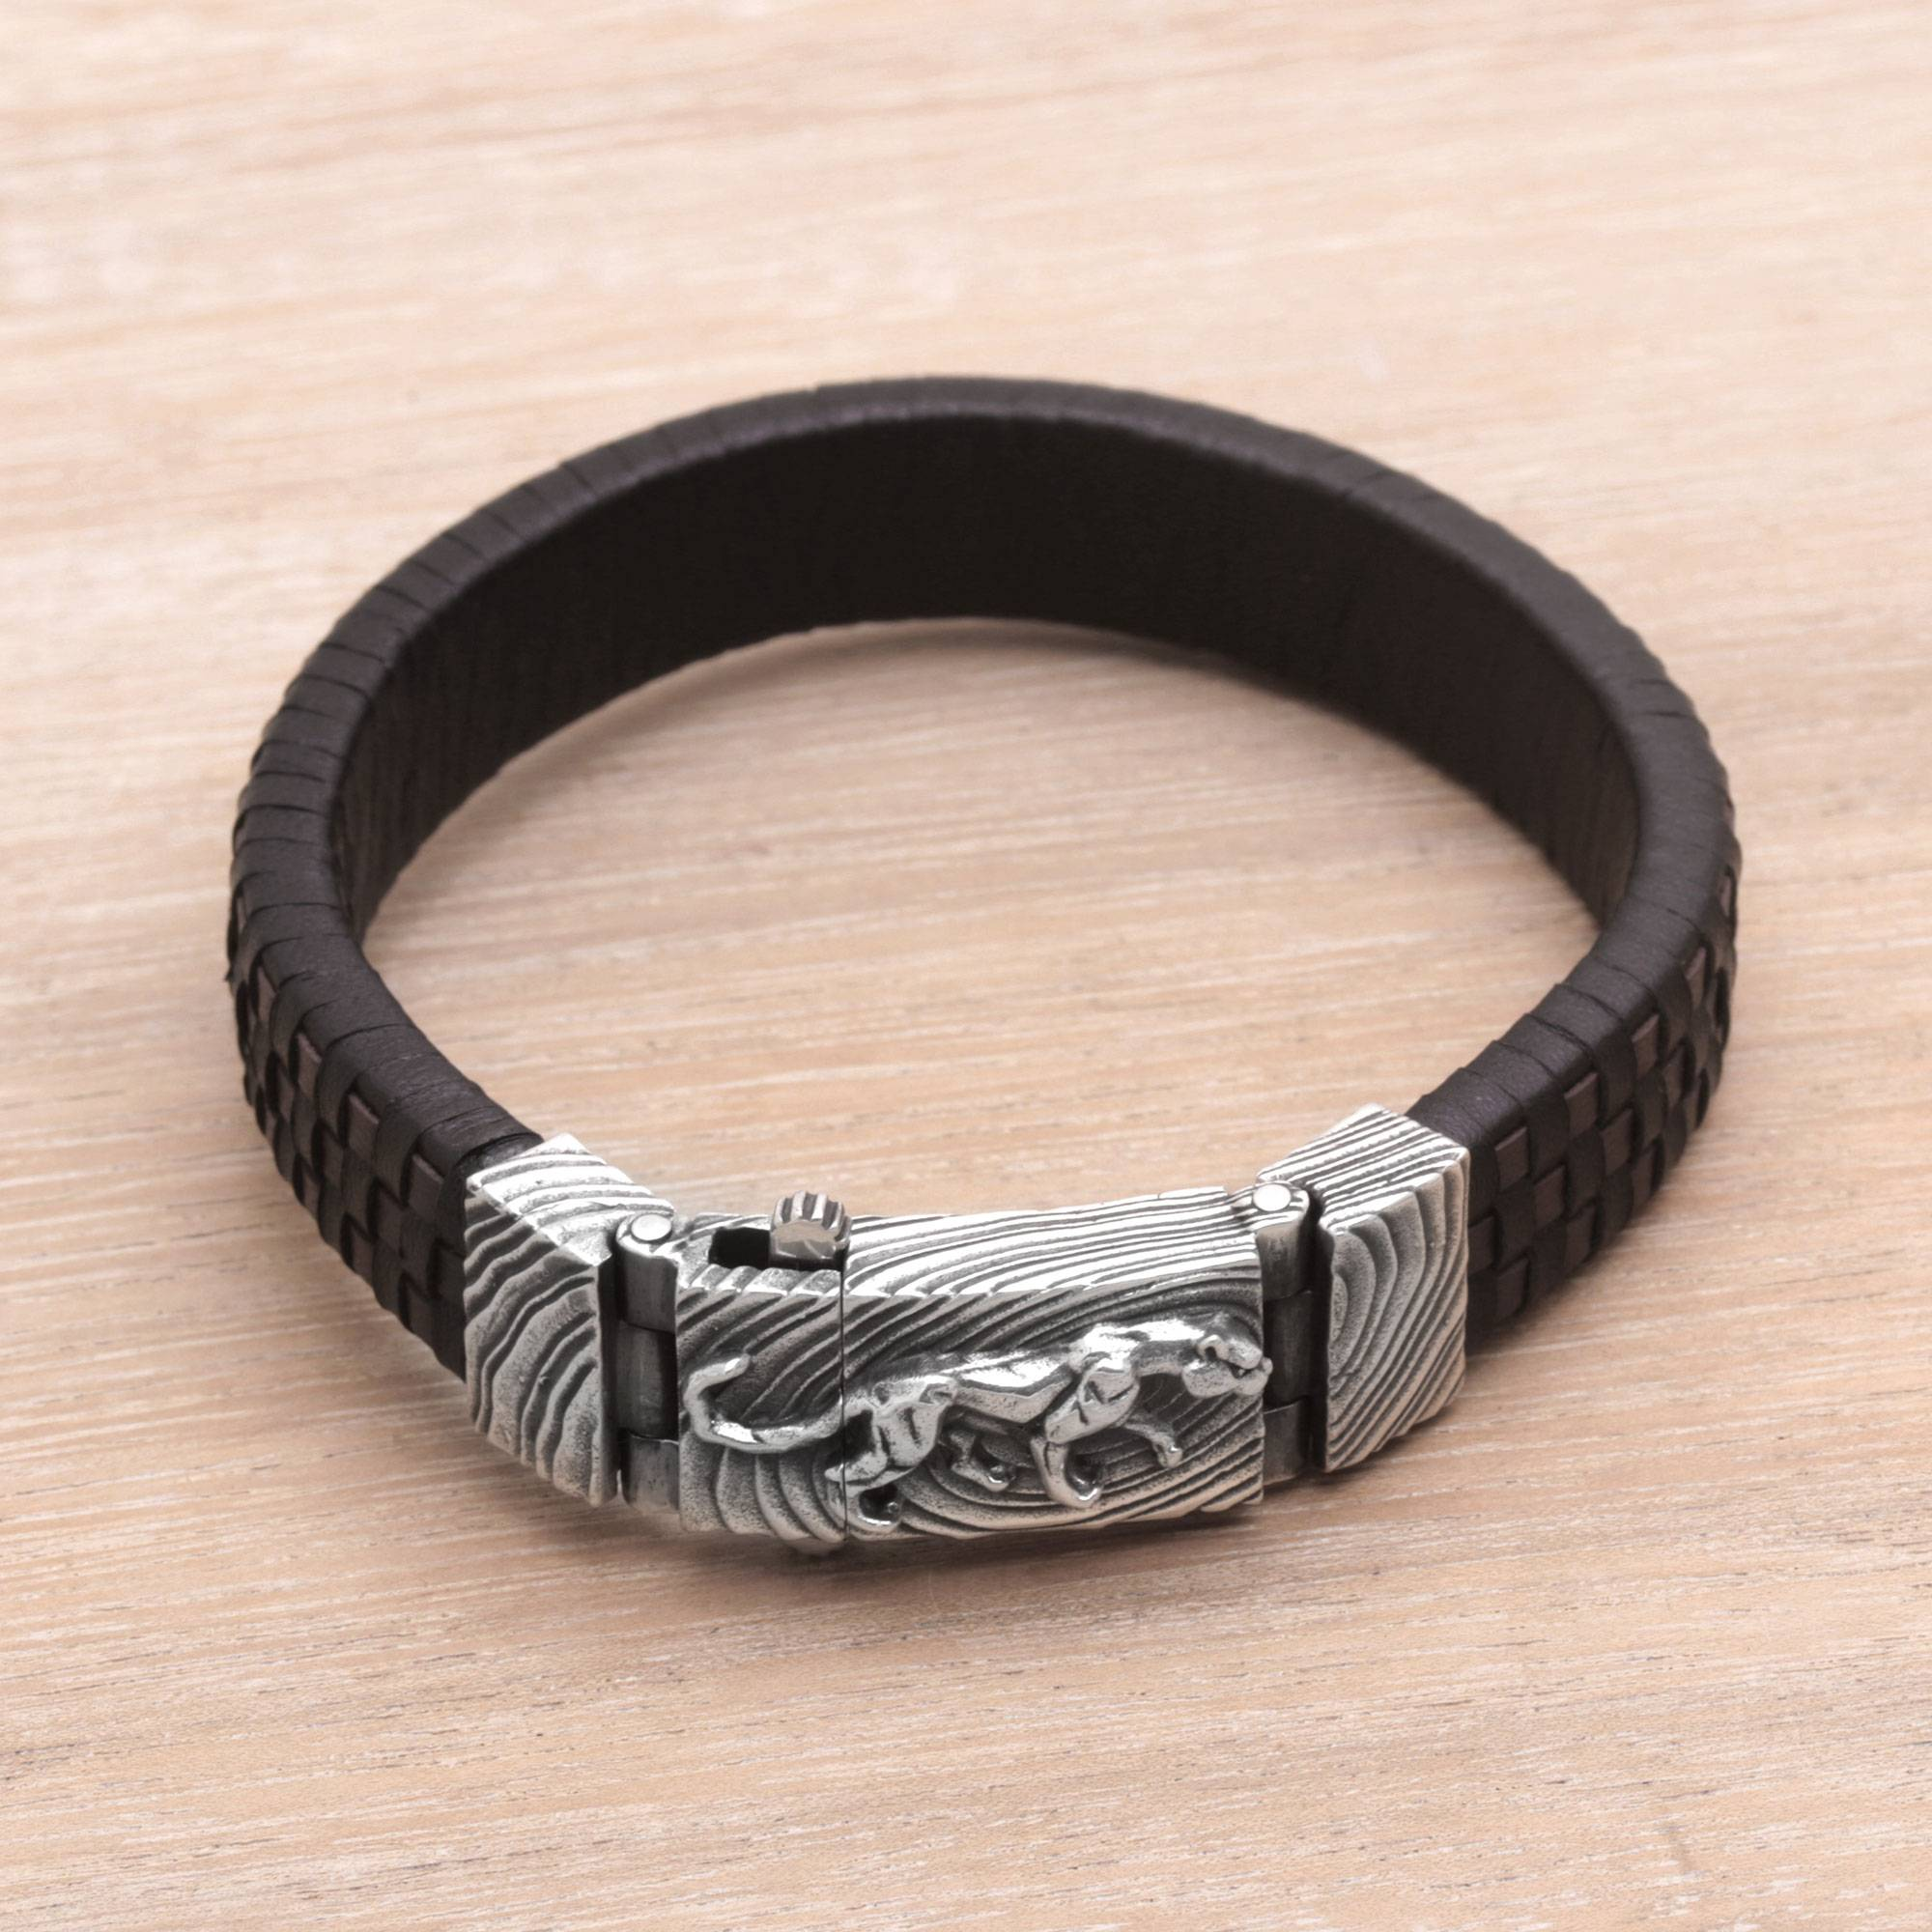 Men's Leather and Sterling Silver Wristband with Puma, 'Powerful Puma'